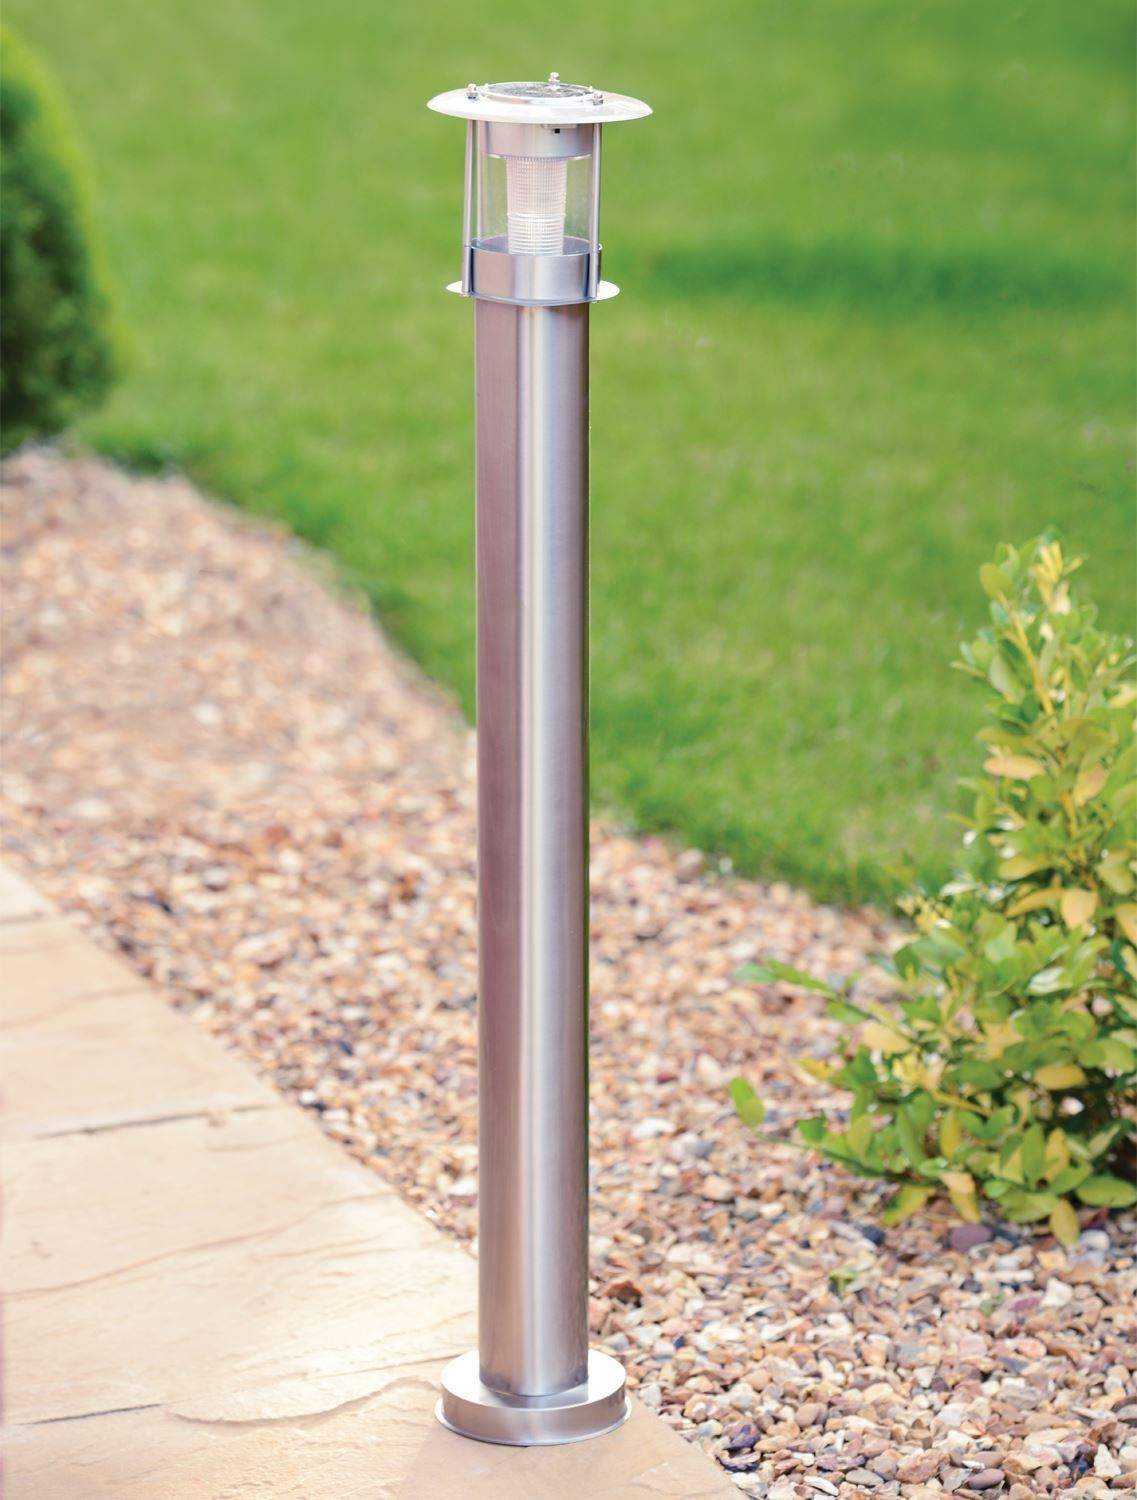 90cm stainless steel outdoor patio driveway garden led solar lamp post. Black Bedroom Furniture Sets. Home Design Ideas